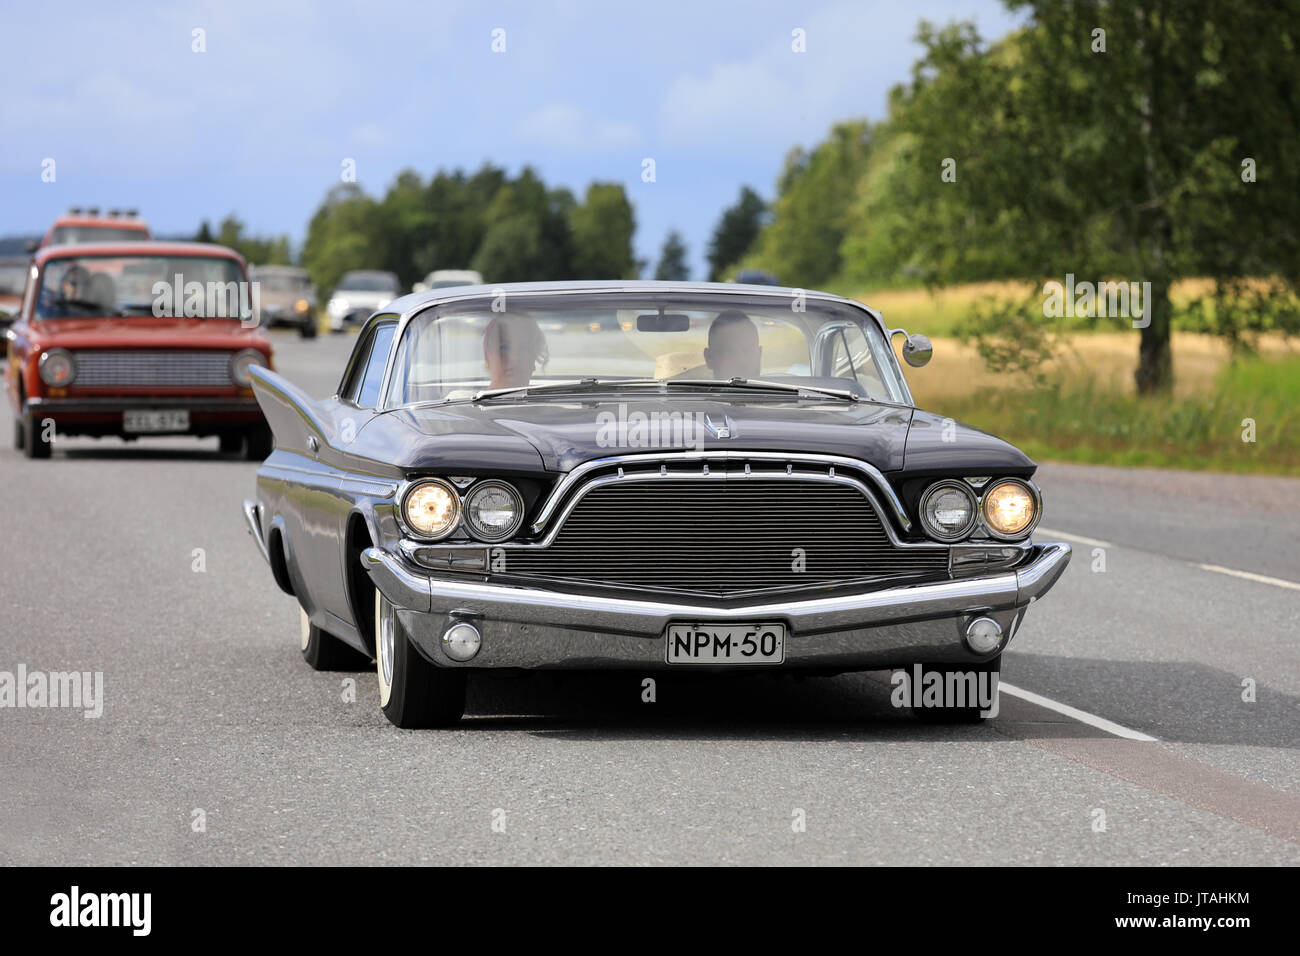 SOMERO, FINLAND - AUGUST 5, 2017: Black Chrysler Desoto Adventurer, probably 1960, moves along highway on Maisemaruise 2017 car cruise late summer eve - Stock Image